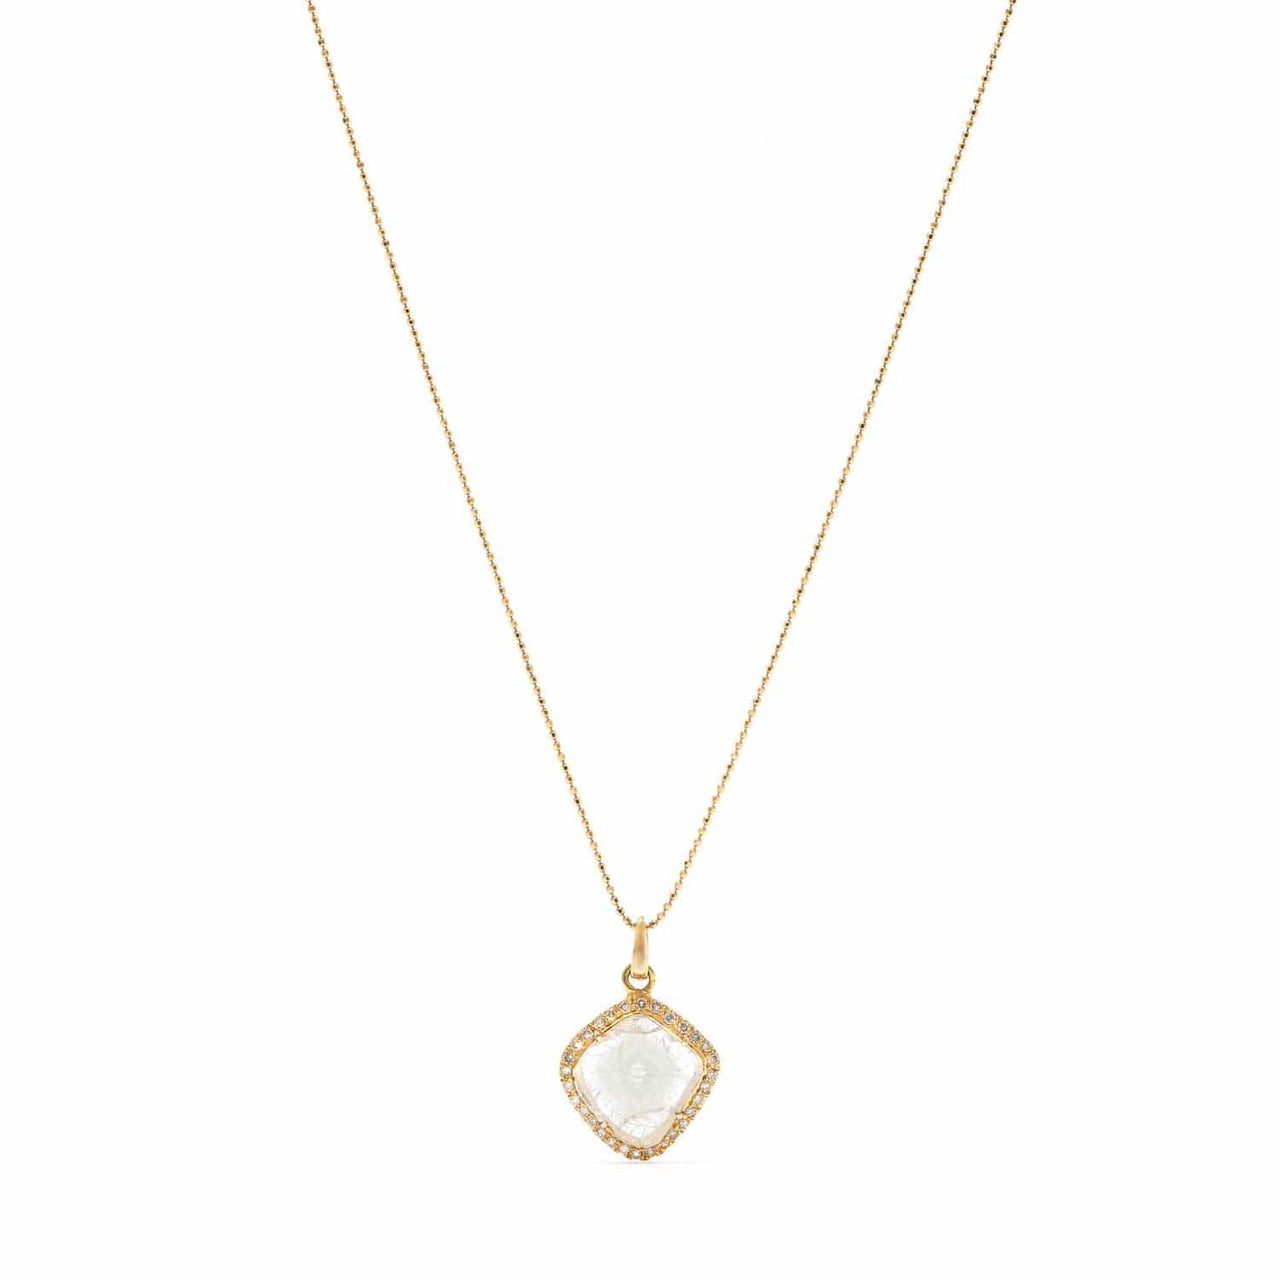 Jaipur Atelier The Winter Diamond Pendant